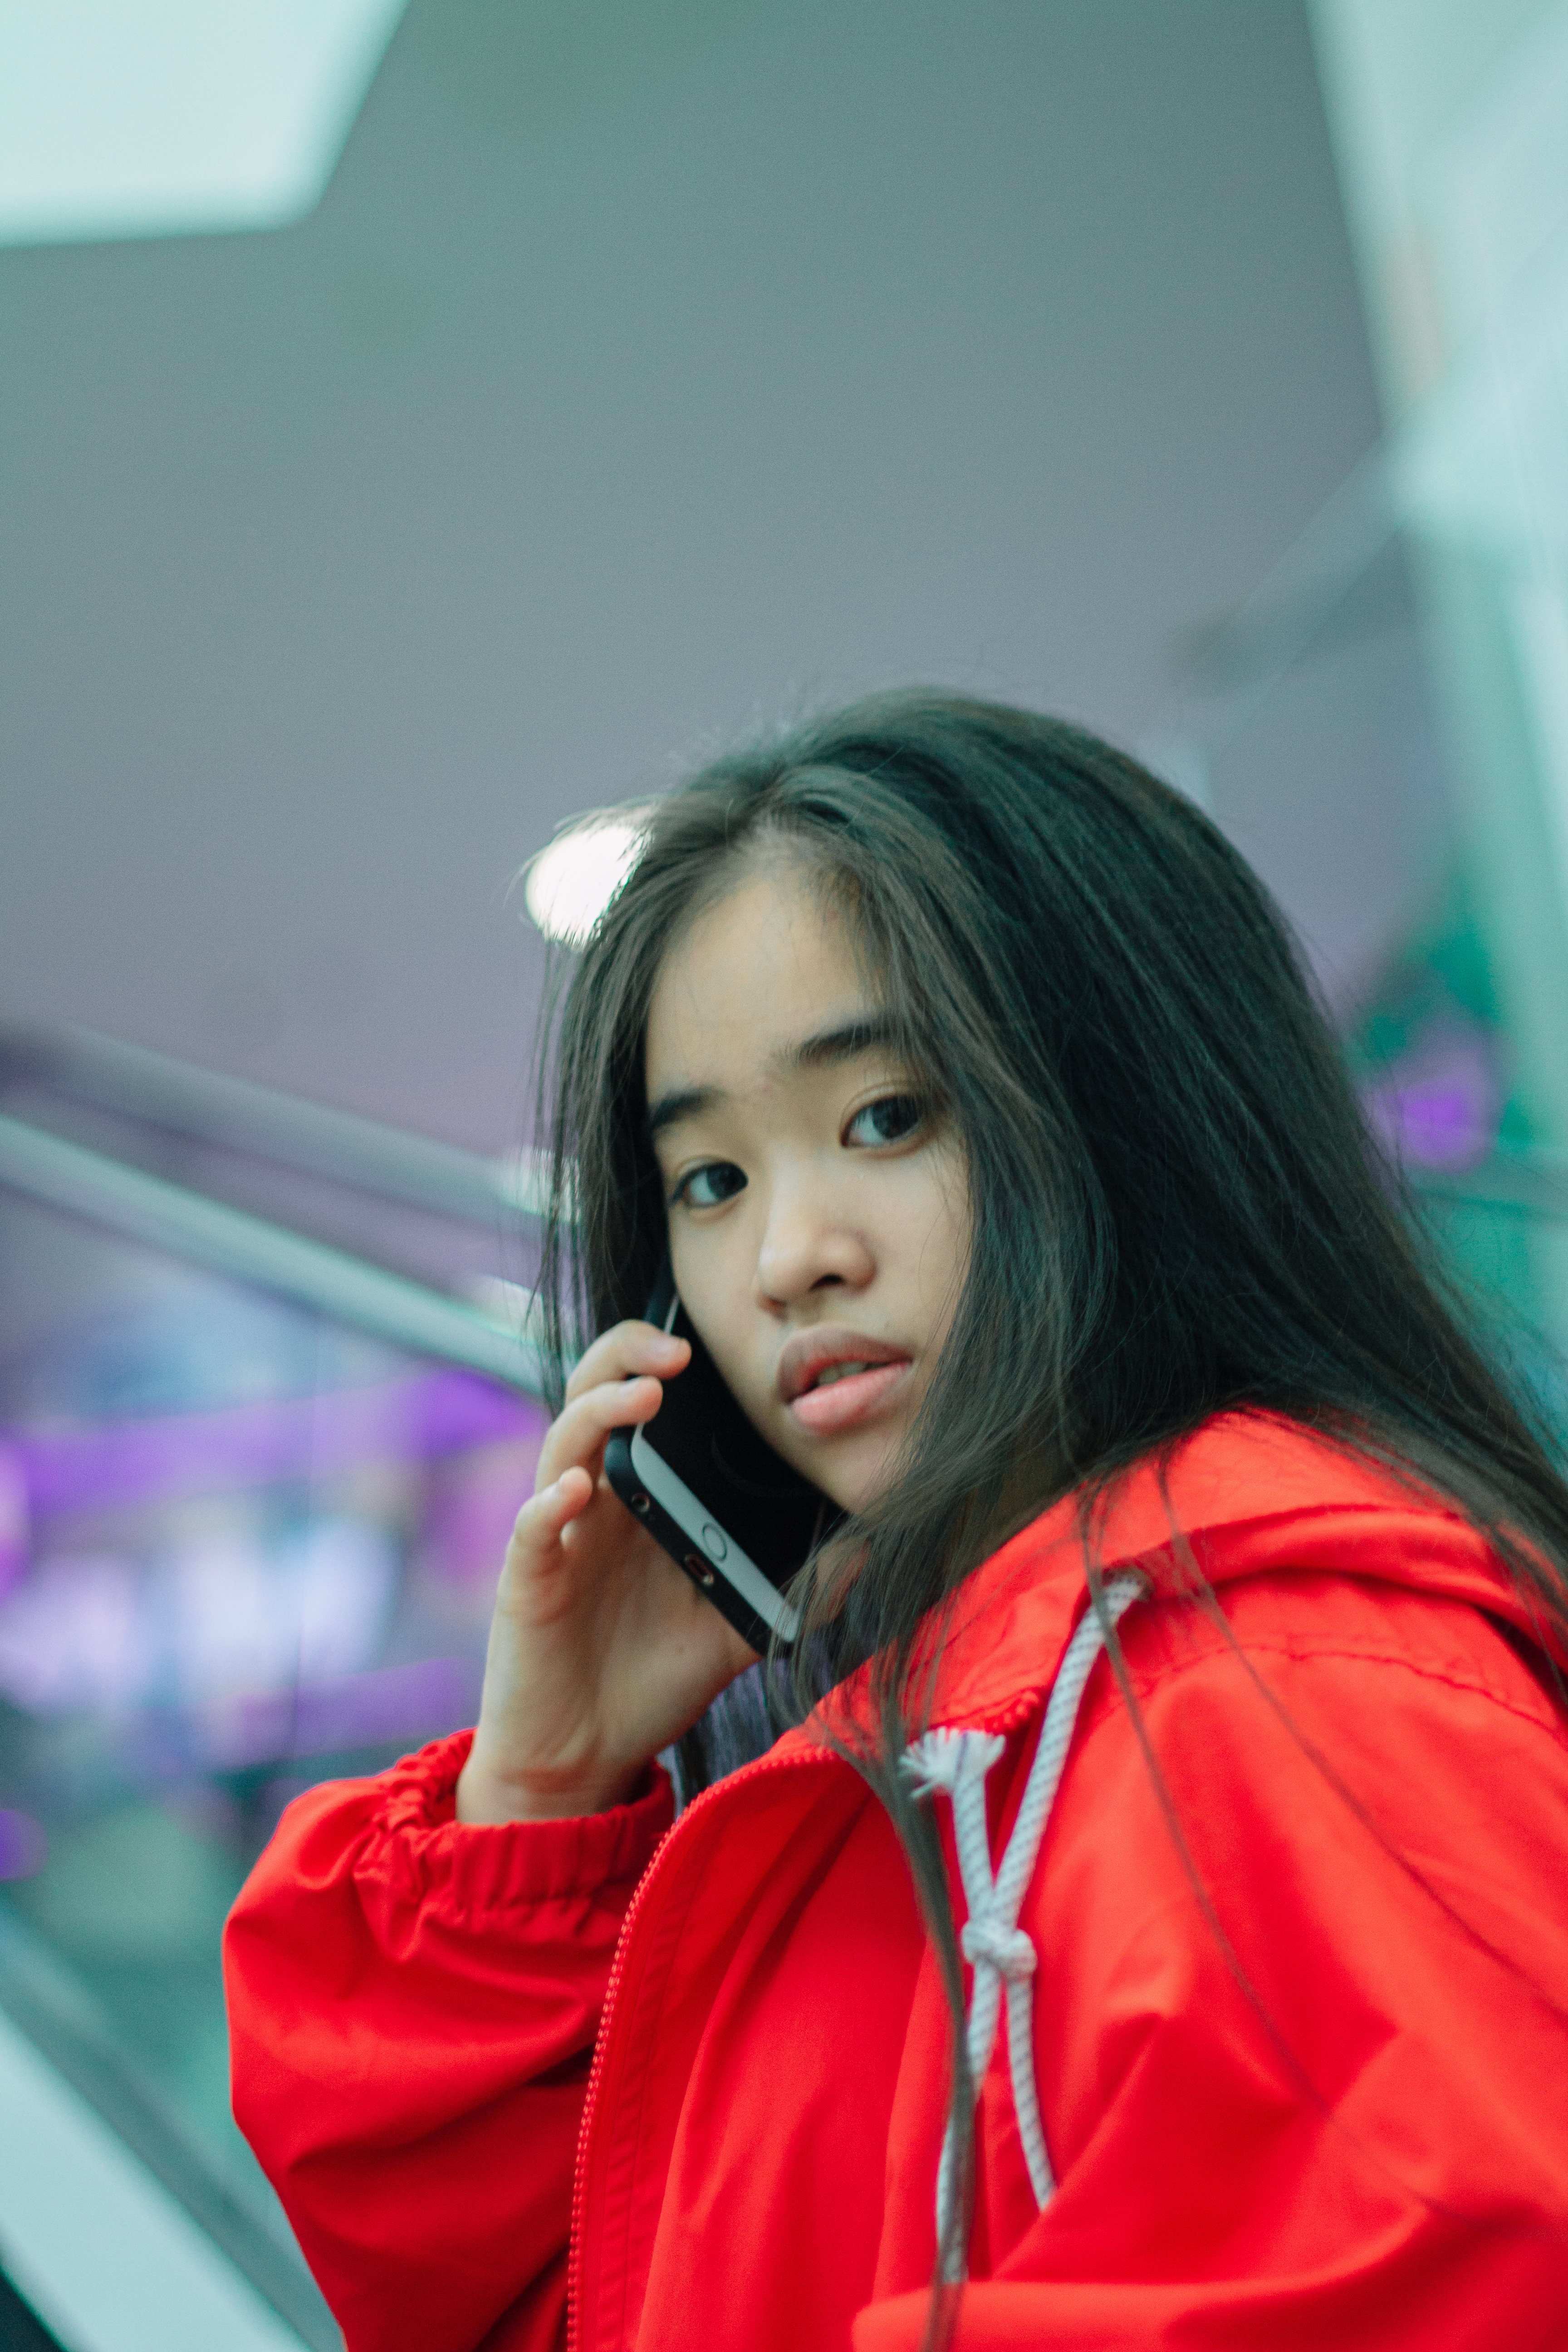 Close-up Photo of Girl In Red Jacket Talking on Cell Phone